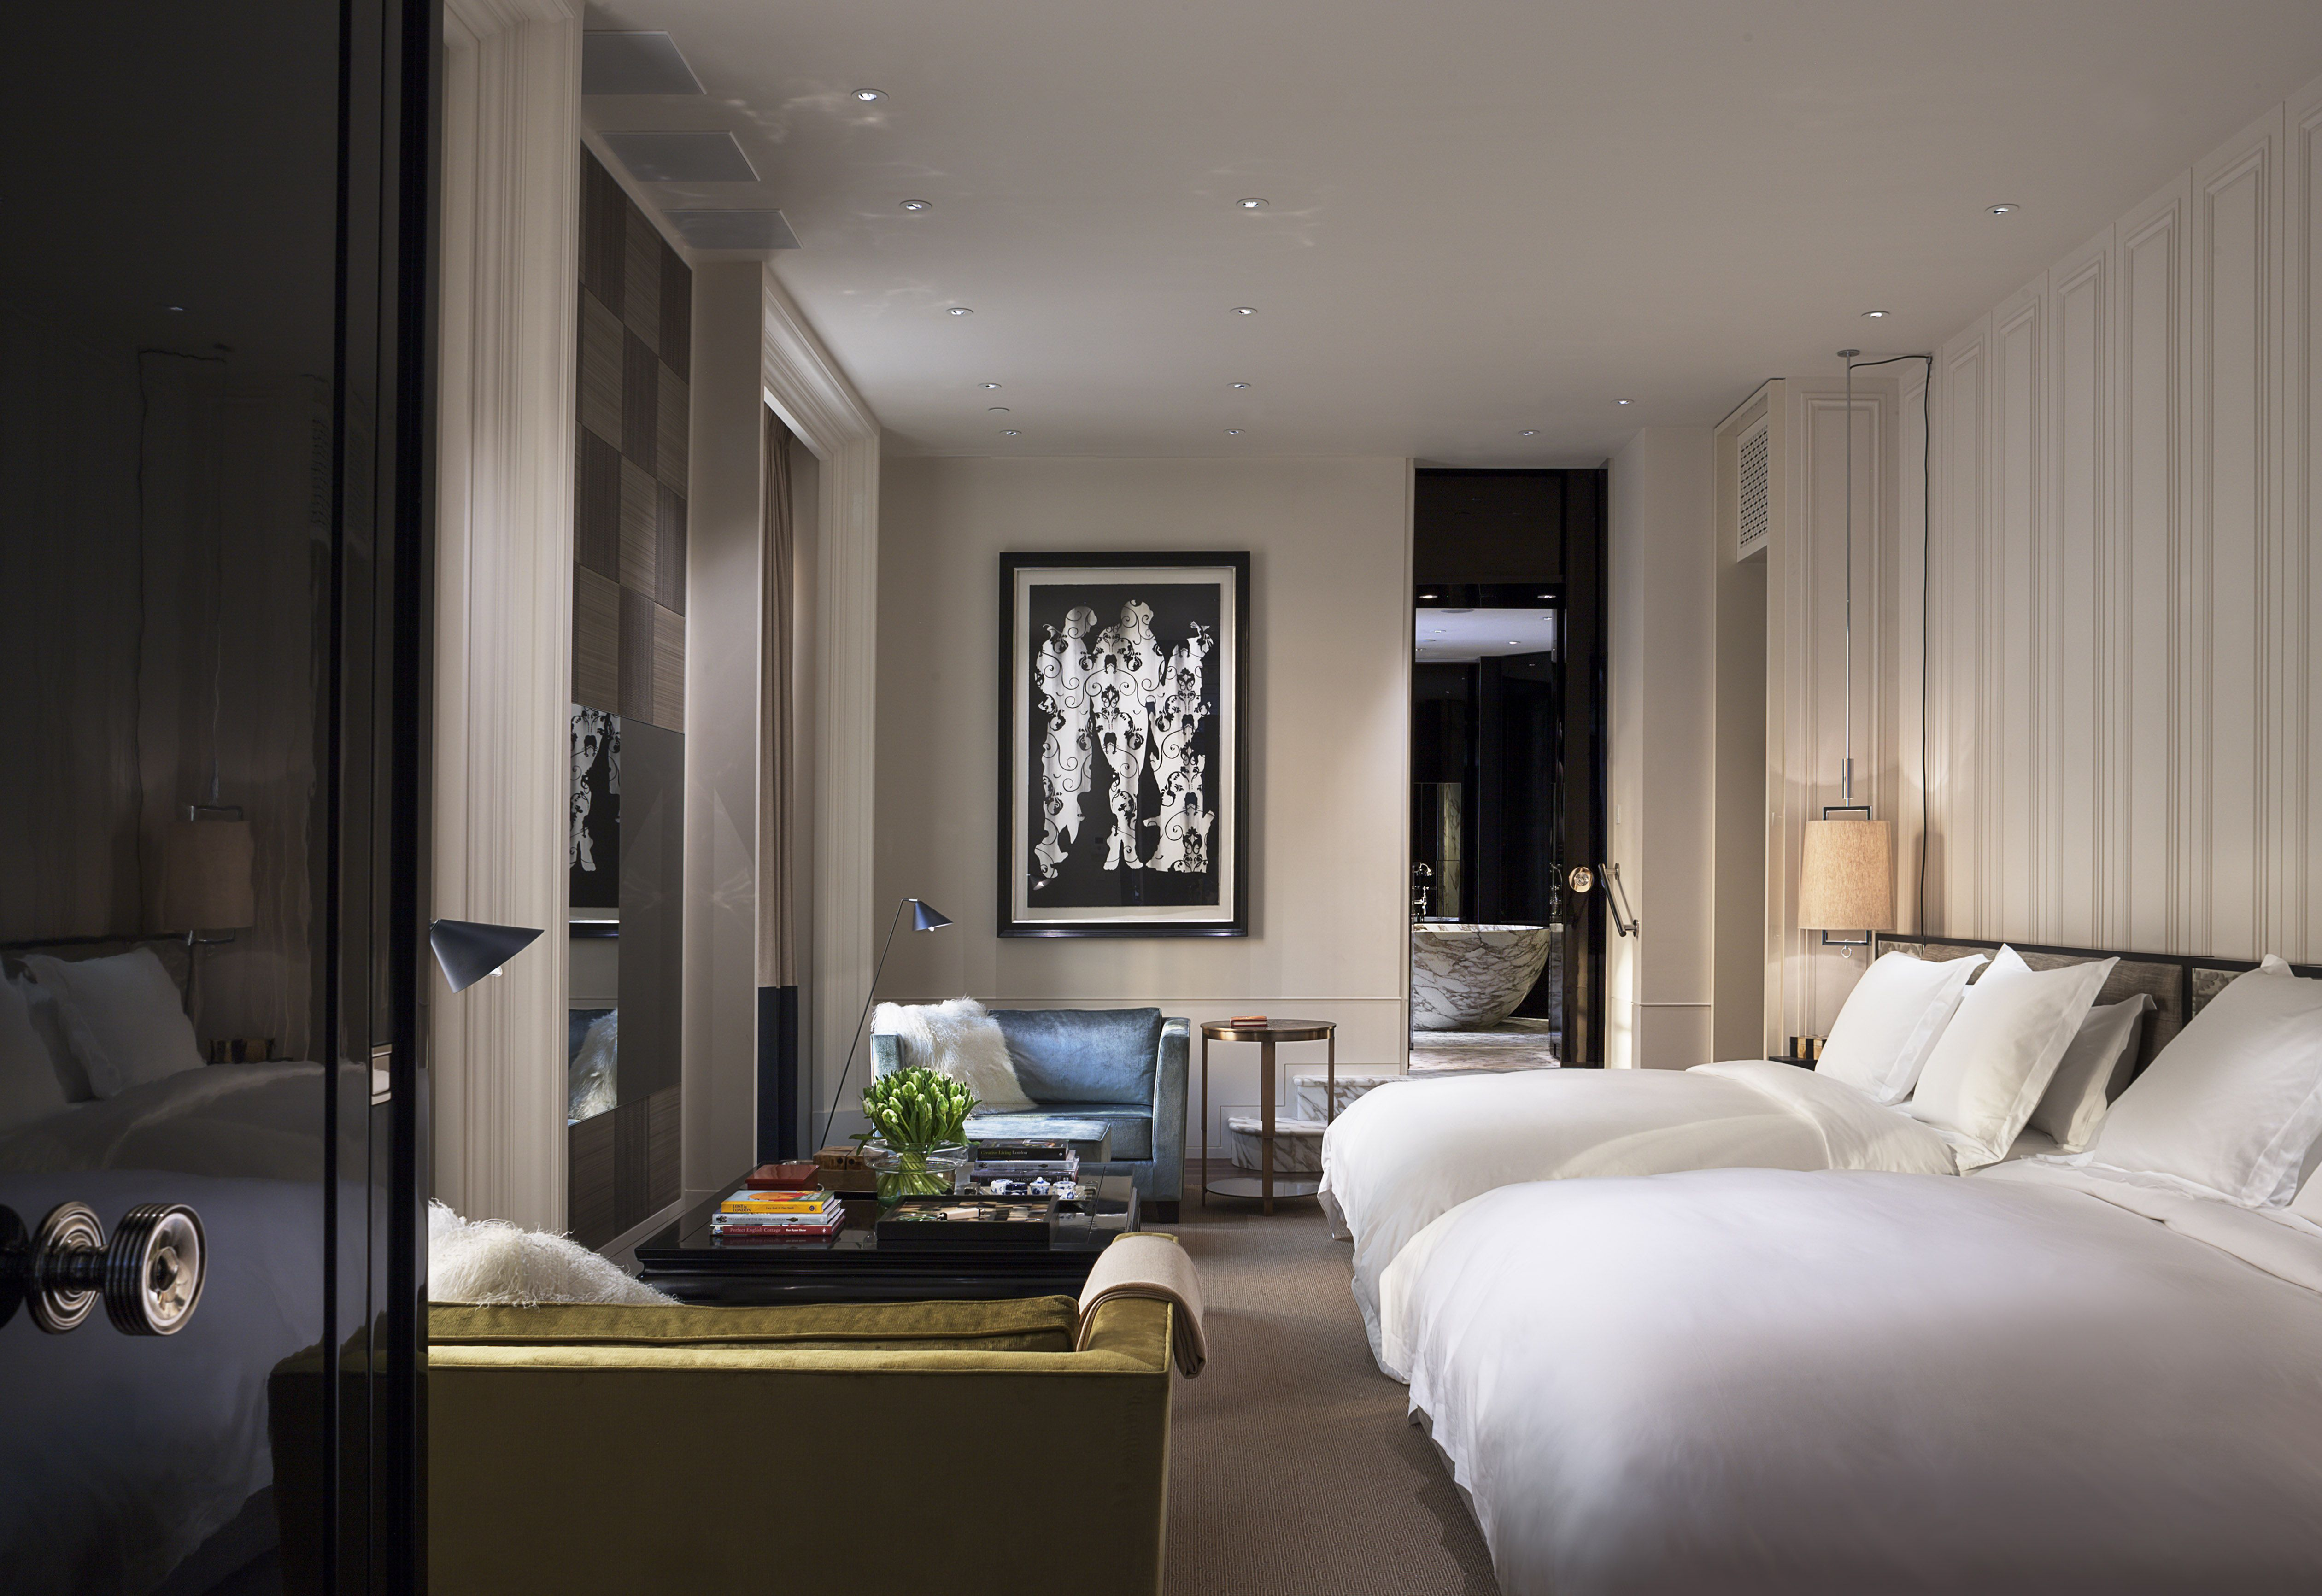 Interior Design Master Bedroom Rosewood London  Bedrooms  Pinterest  Bedrooms Interiors And